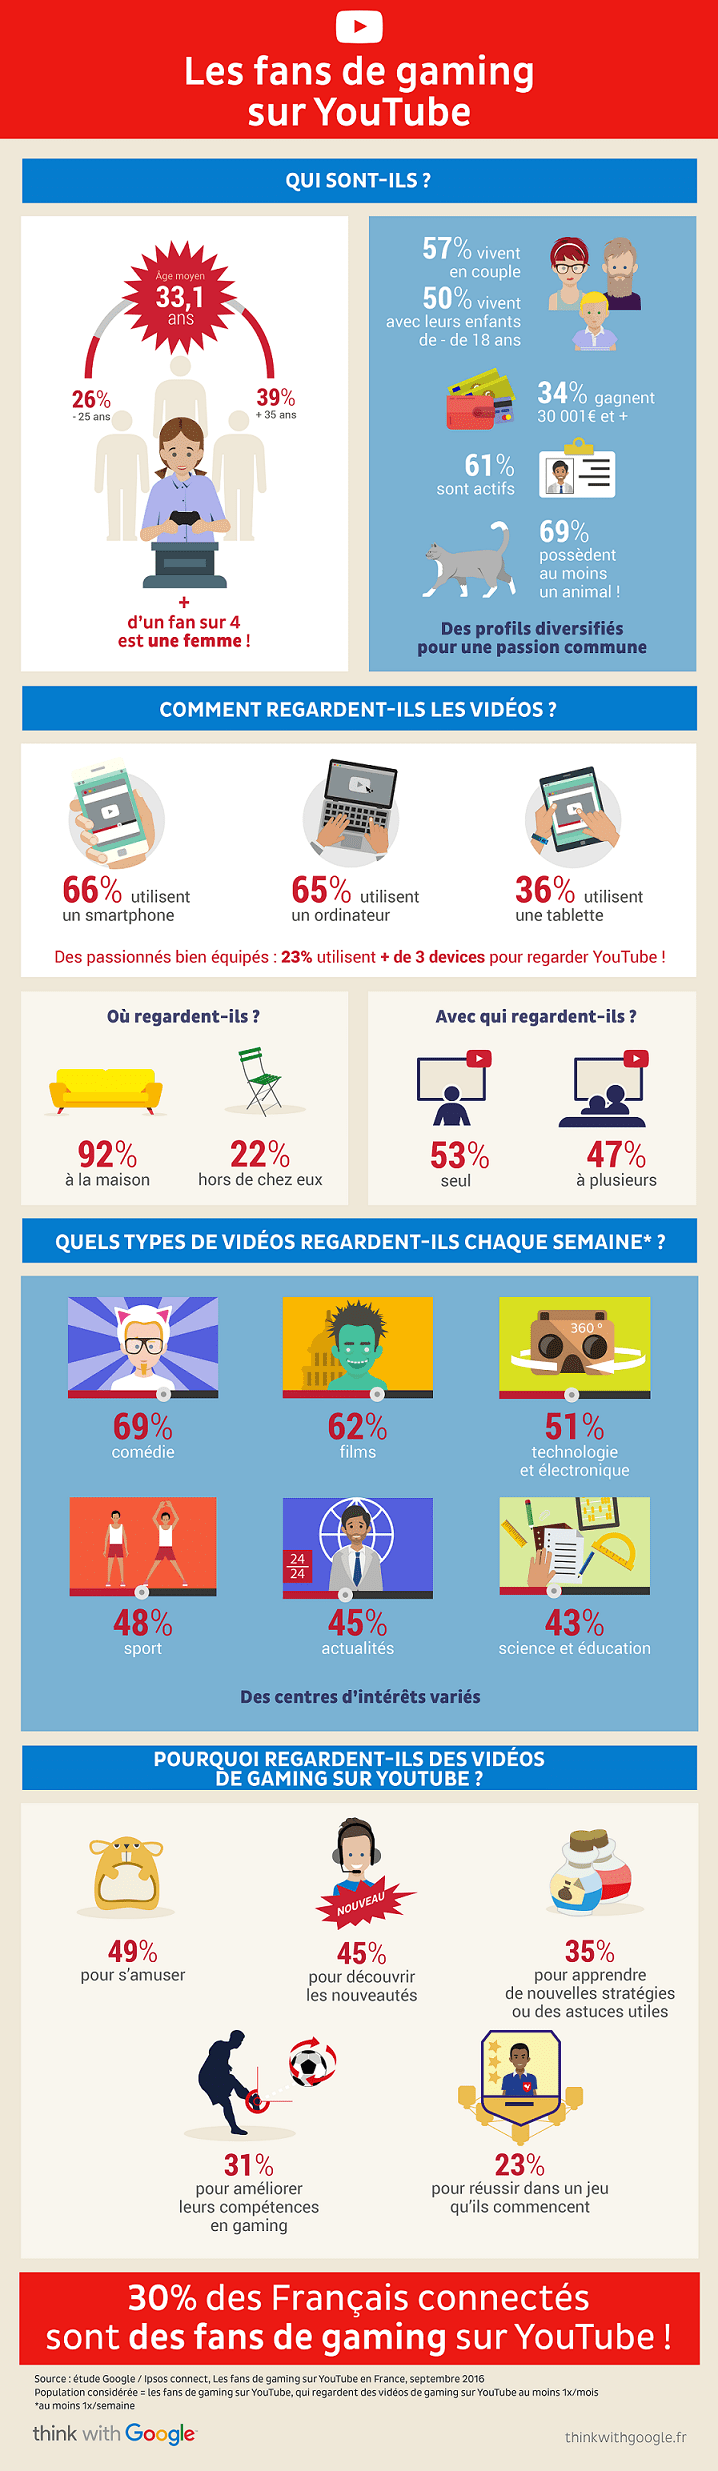 nl1467-infographie-youtube